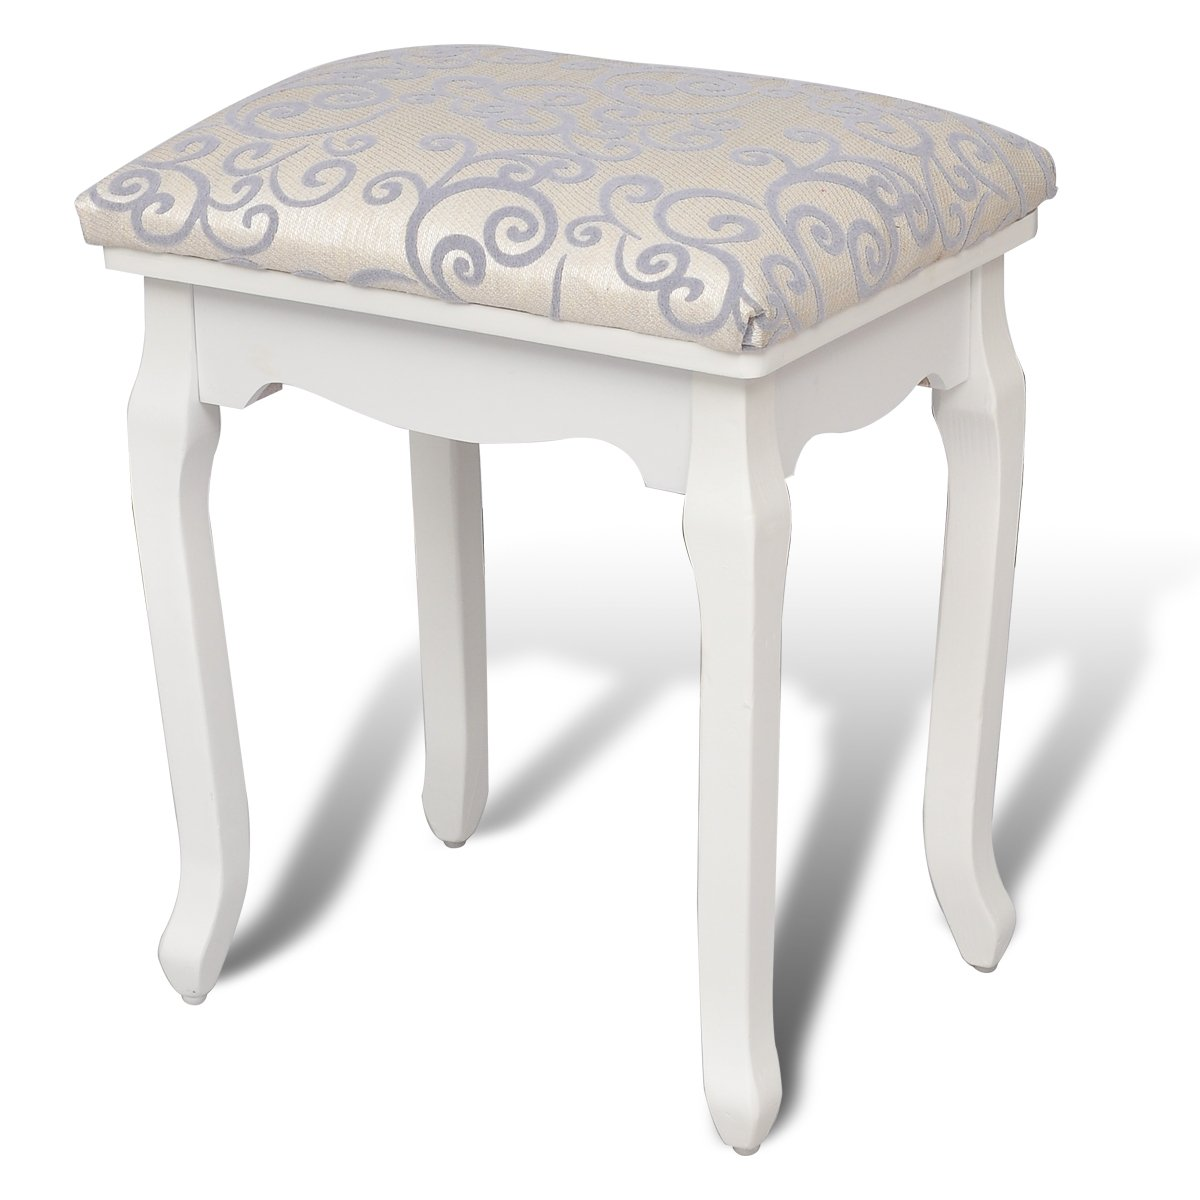 Dressing table stools bedroom furniture victorian chair for Bedroom table chairs